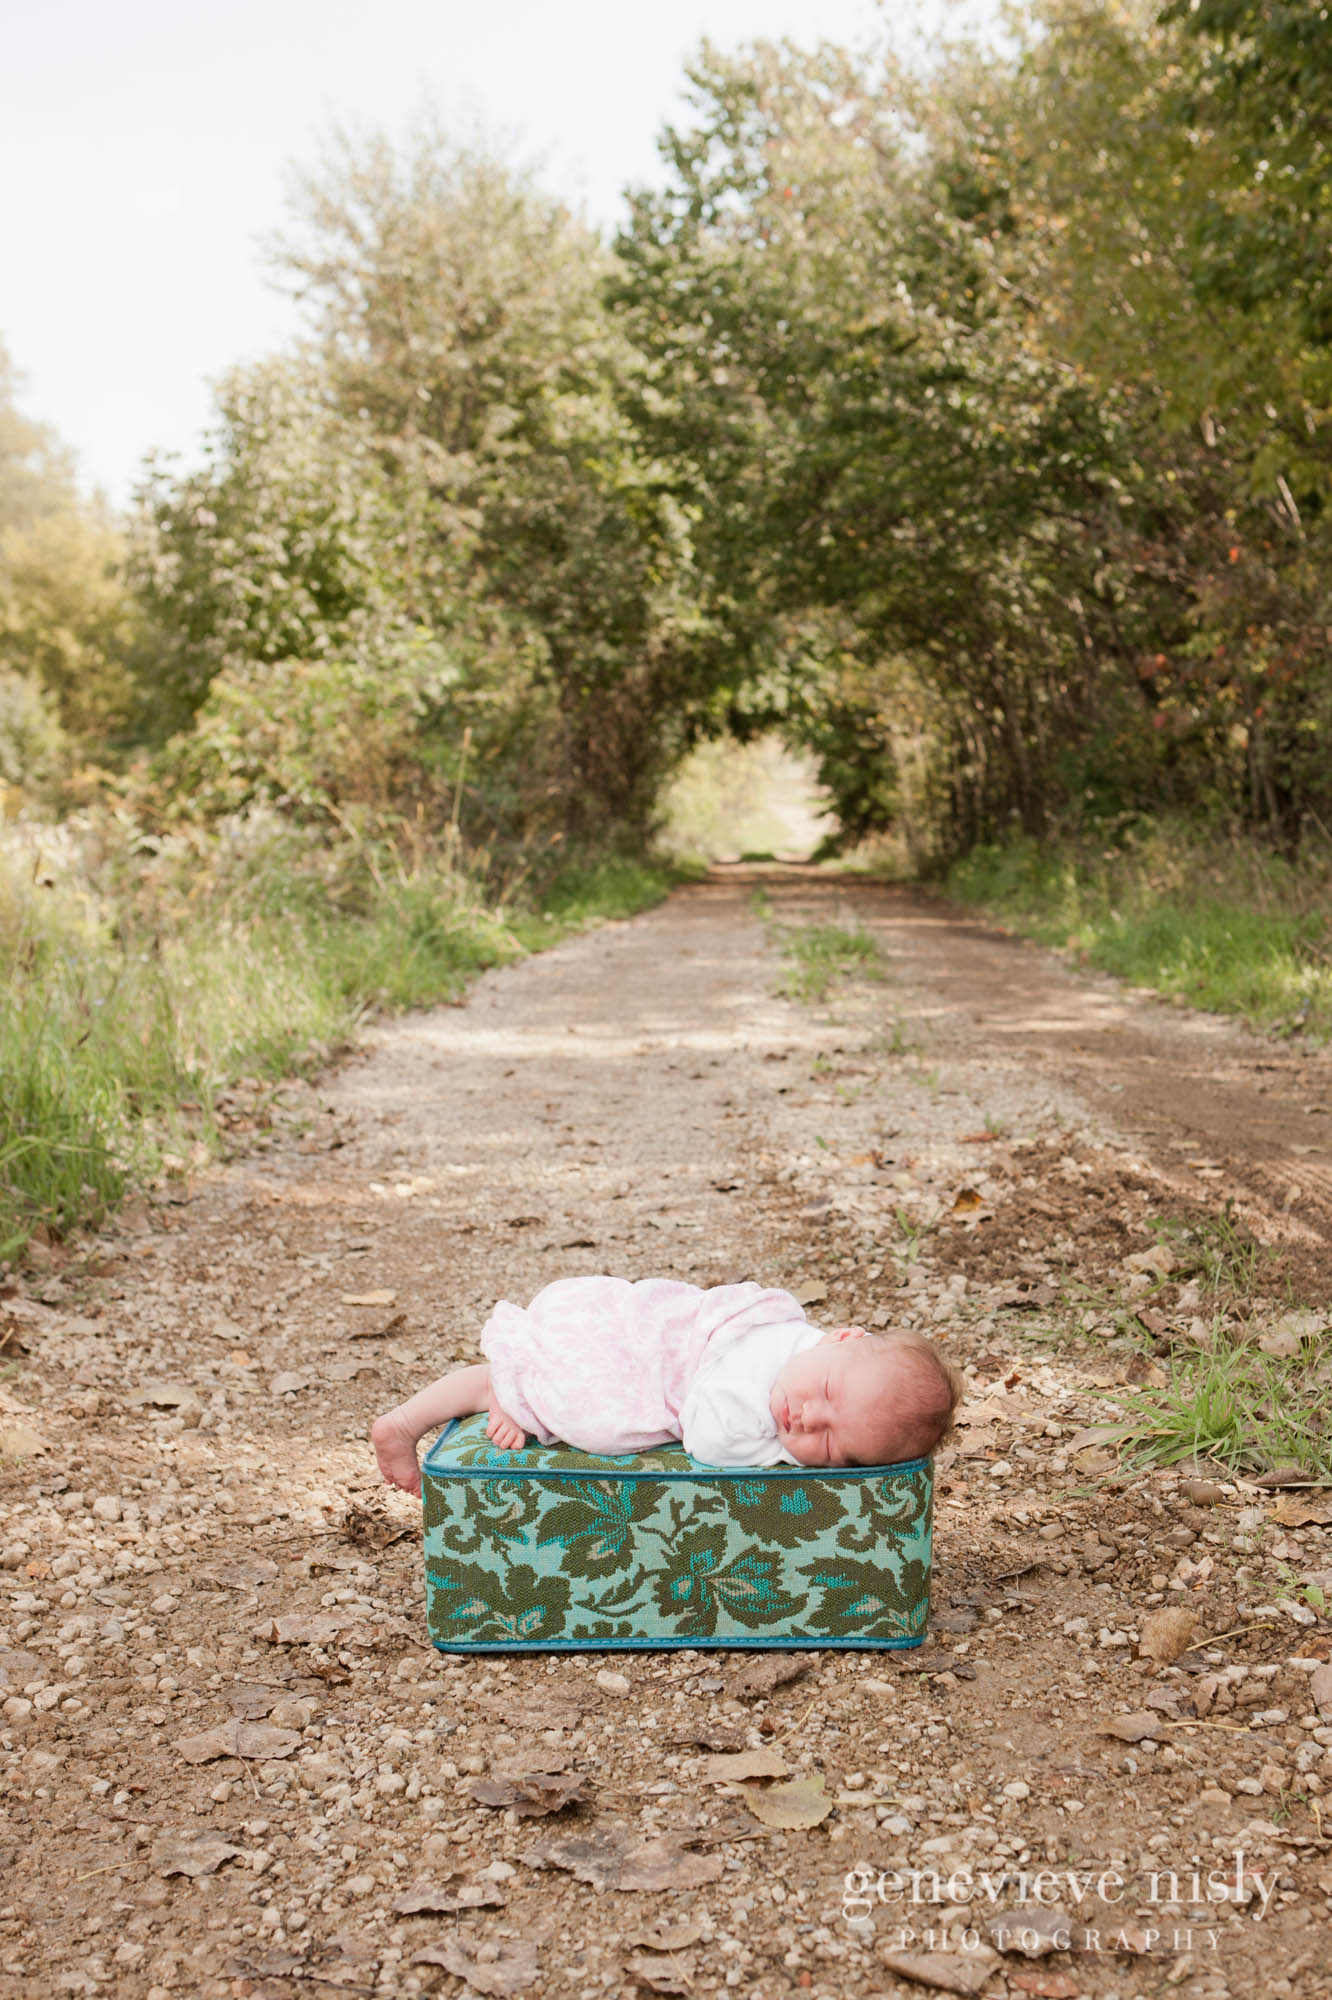 Baby, Copyright Genevieve Nisly Photography, Portraits, Summer